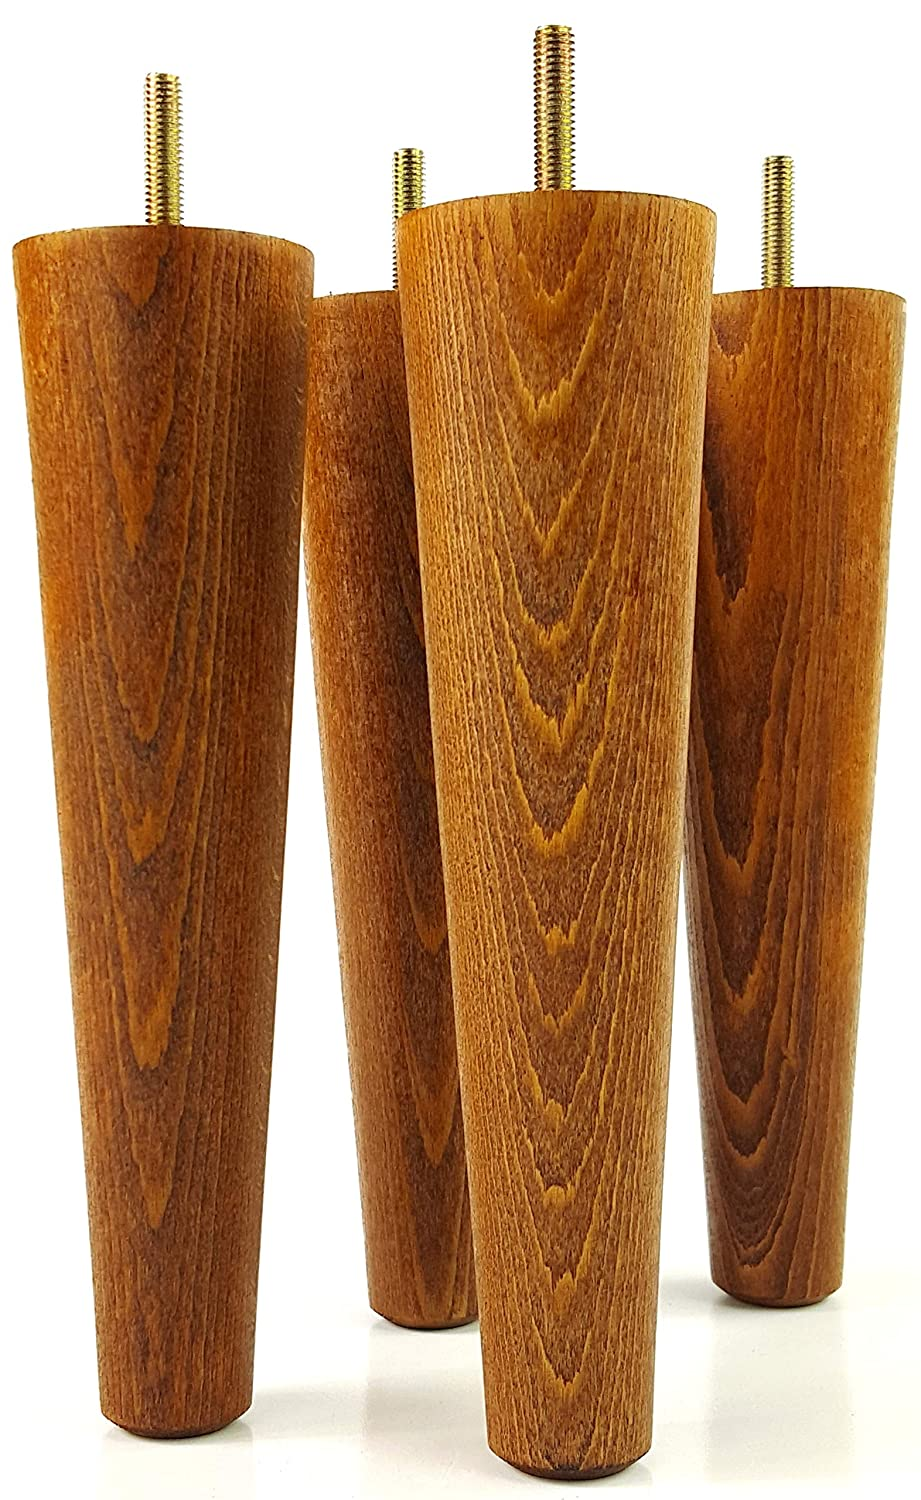 Wooden Furniture FEET Replacement Legs for Sofas, Chairs, SETTEES, 220mm HIGH - Set of 4 - M8(8mm) - PKC2117H KNIGHTSBRANDNU2U